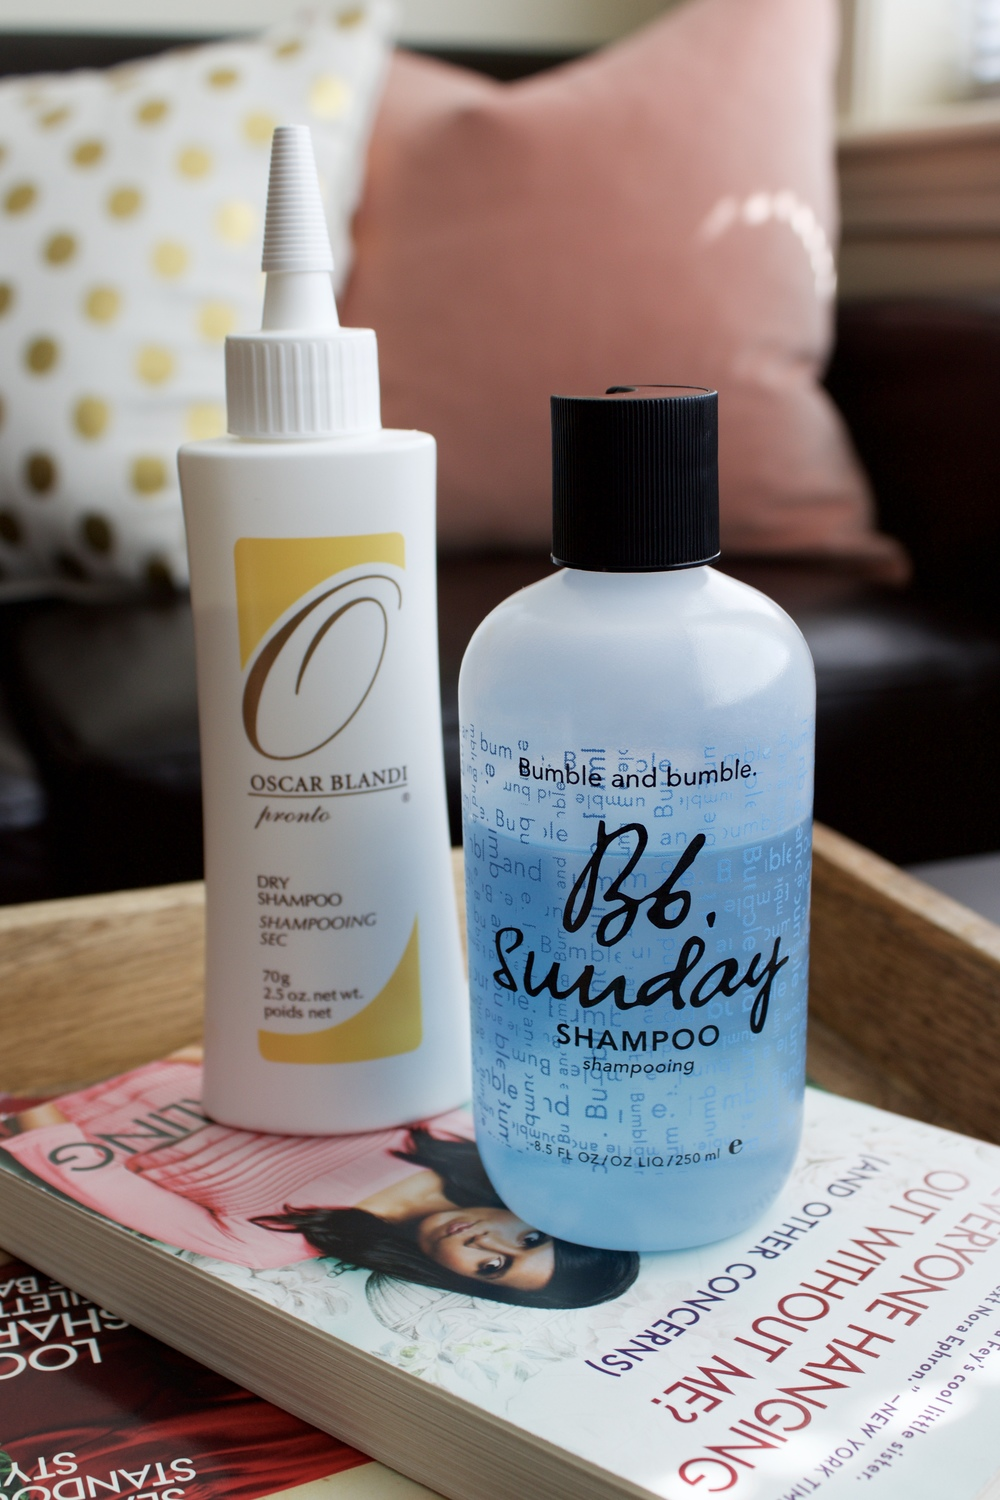 Samantha McNeil July Favorites - Dry Shampoo and Clarifying Shampoo